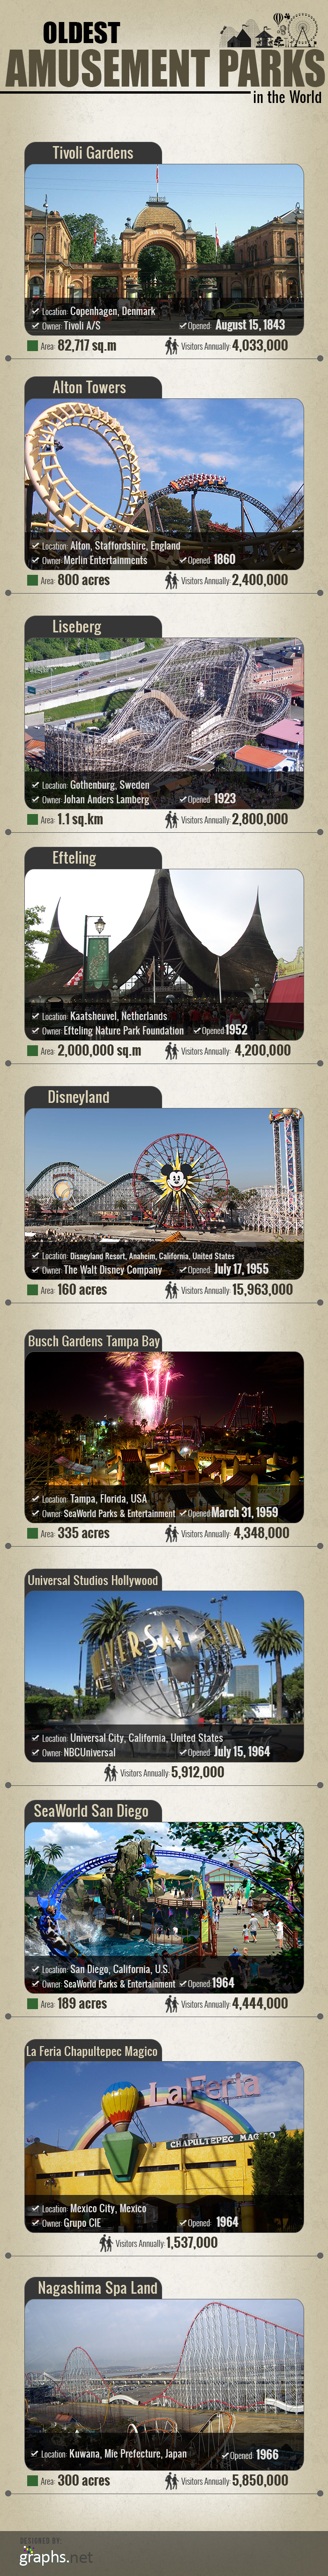 Oldest-Amusement-Parks-in-the-World